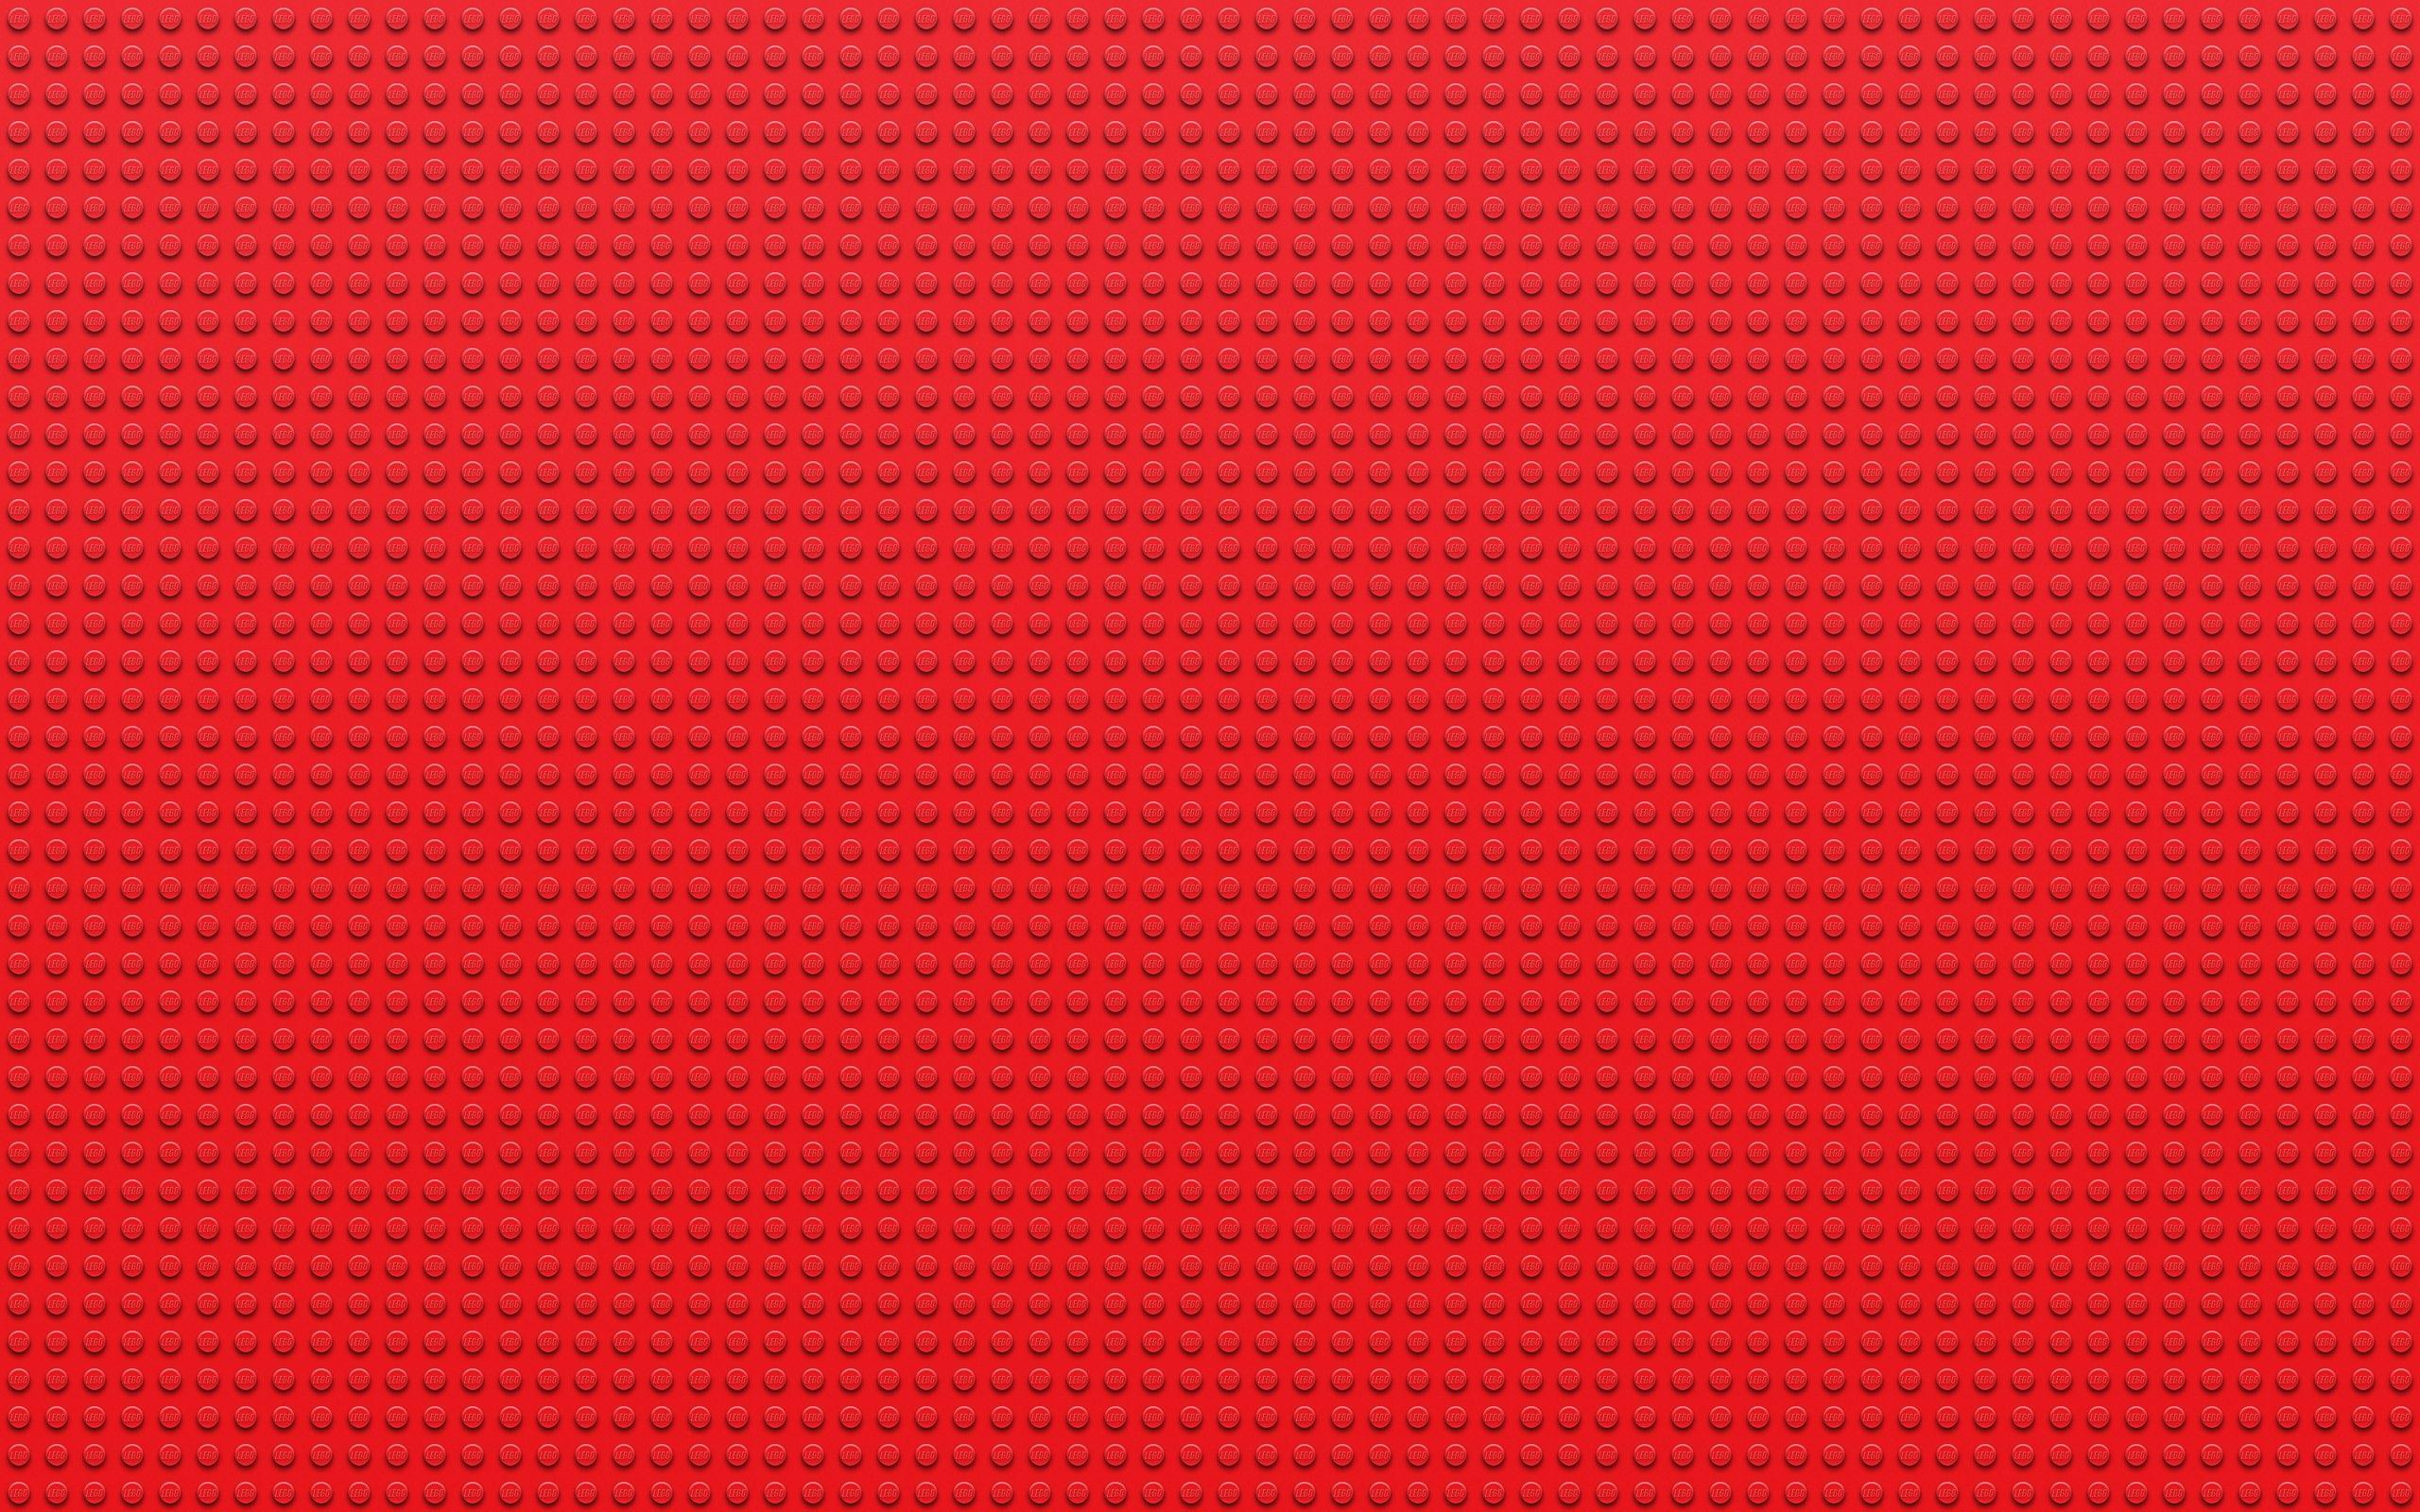 Lego Red Textures Dots Wallpapers At Texture Wallpapers